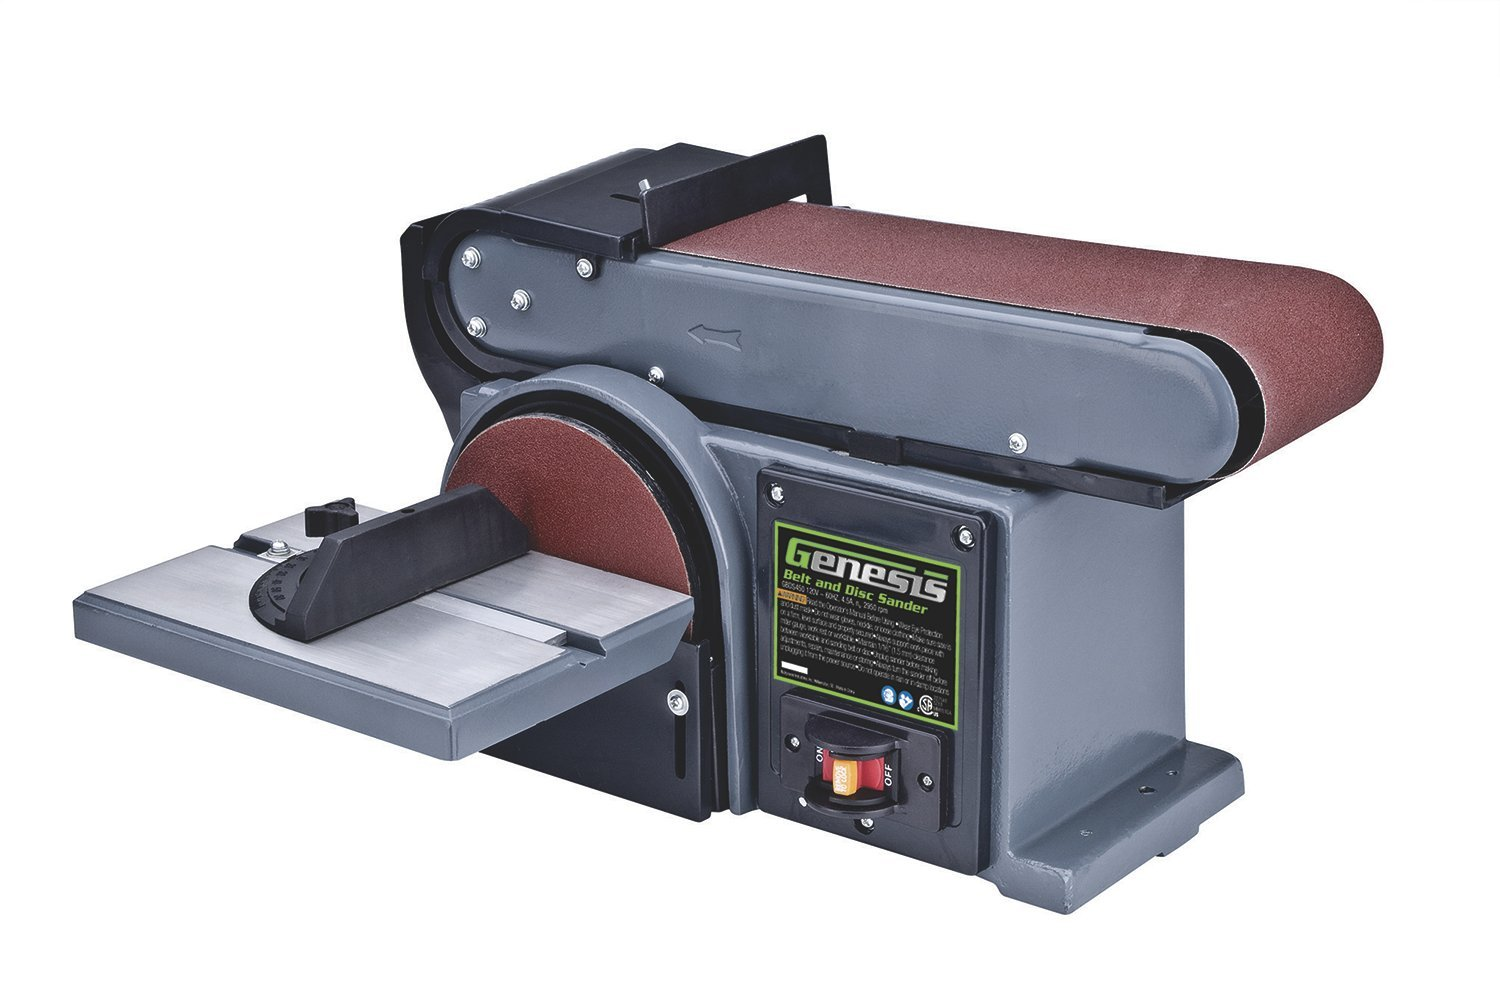 Genesis GBDS450 4-Inch by 46-Inch 4.5-Amp Belt/Disc Sander - Power  Combination Disc And Belt Sanders - Amazon.com